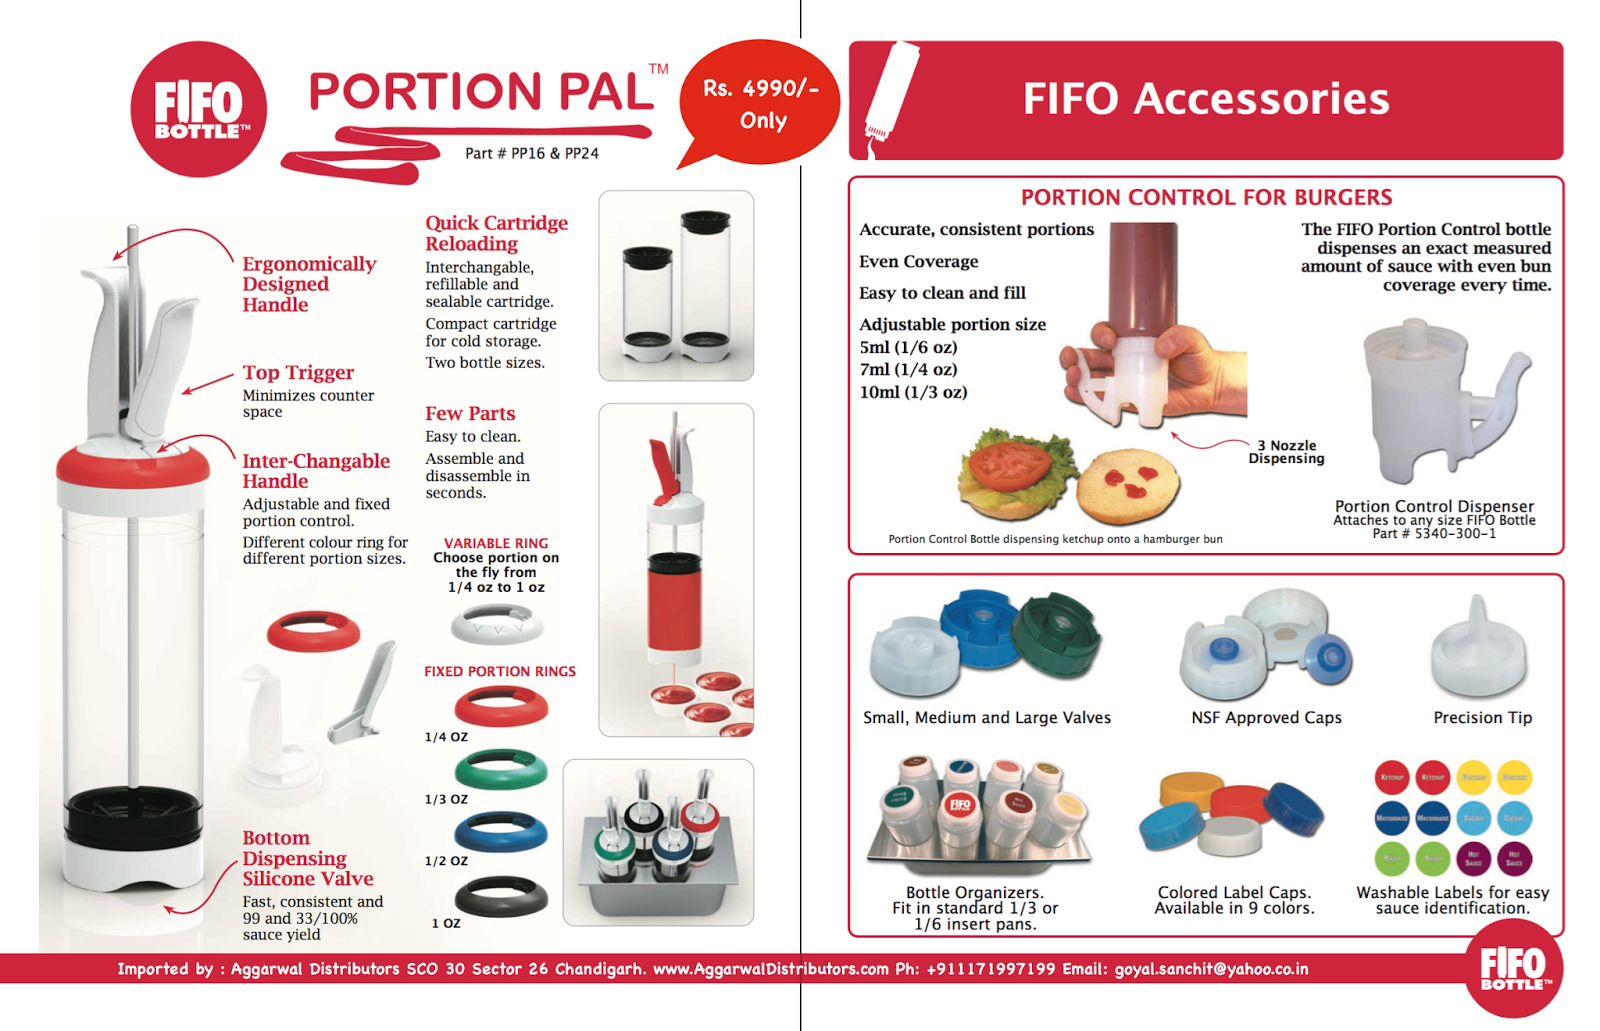 Aggarwal Distributors Fifo Bottle And Portion Pal